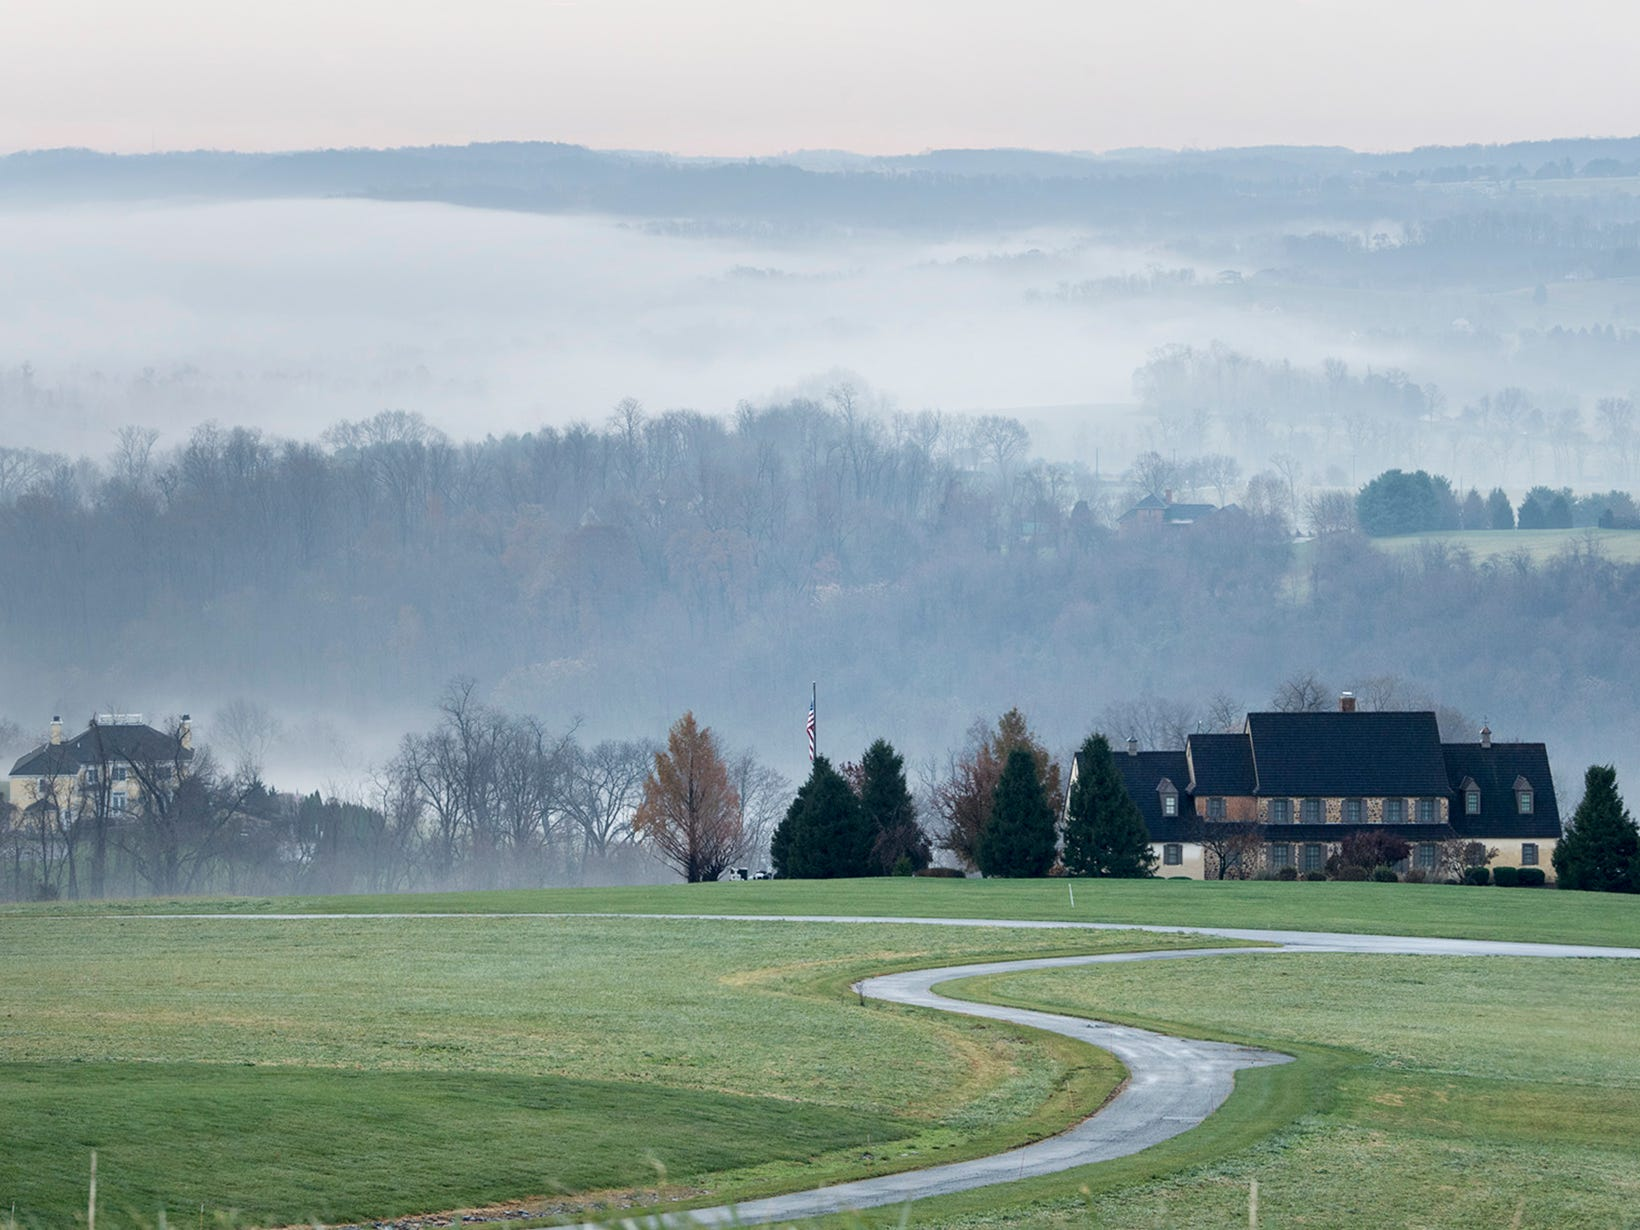 Fog blankets the Susquehanna River in a view from Highpoint Scenic Vista & Recreation Area in Lower Windsor Township on Sunday November 25, 2018.